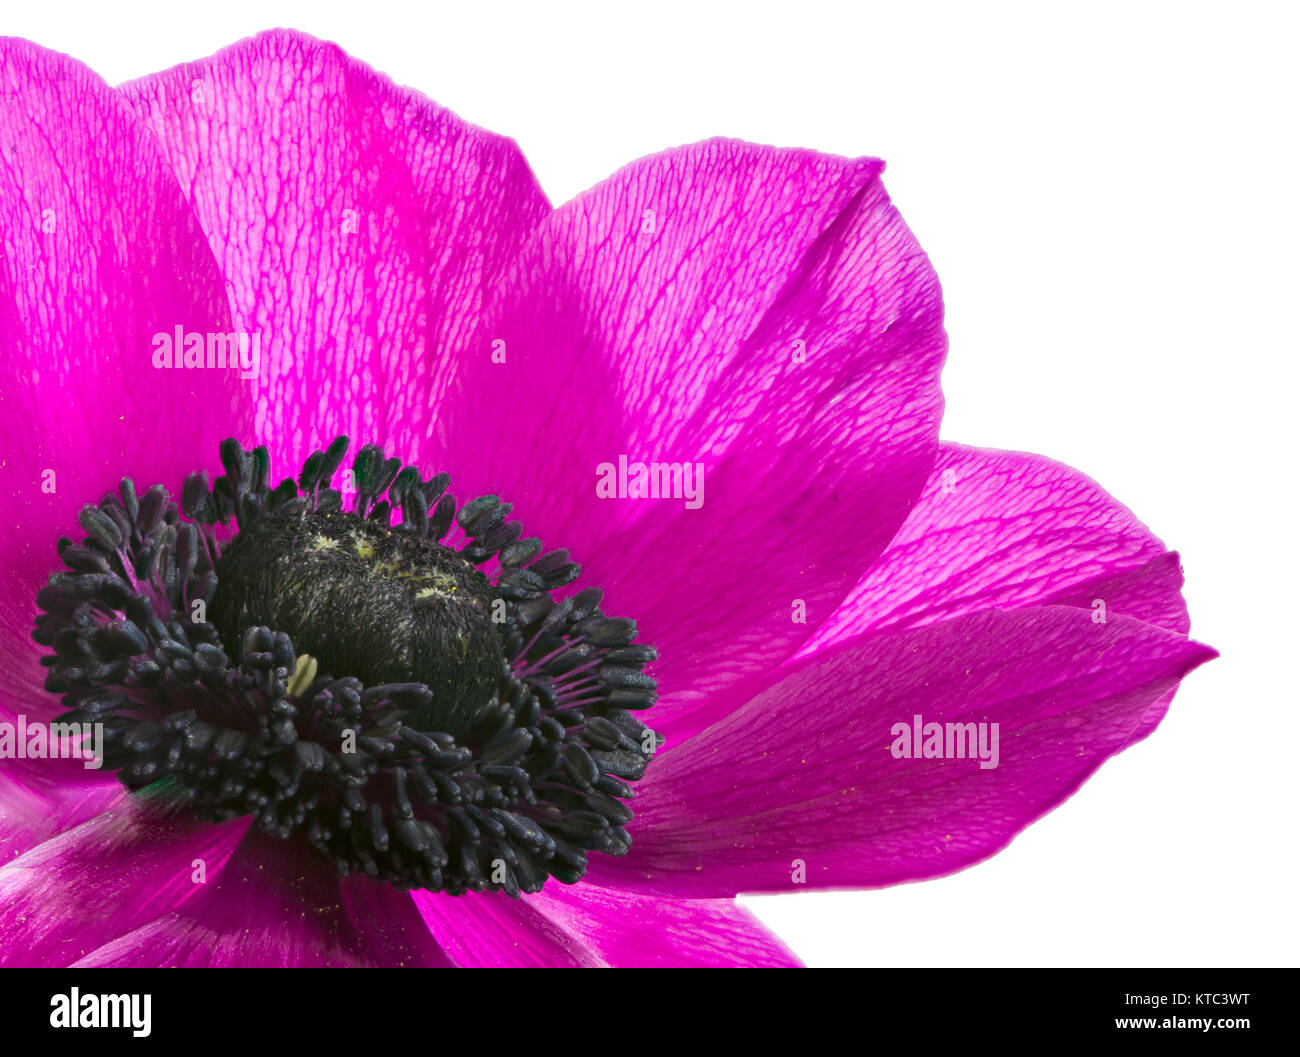 Isolated purple anemone flower blossom Stock Photo